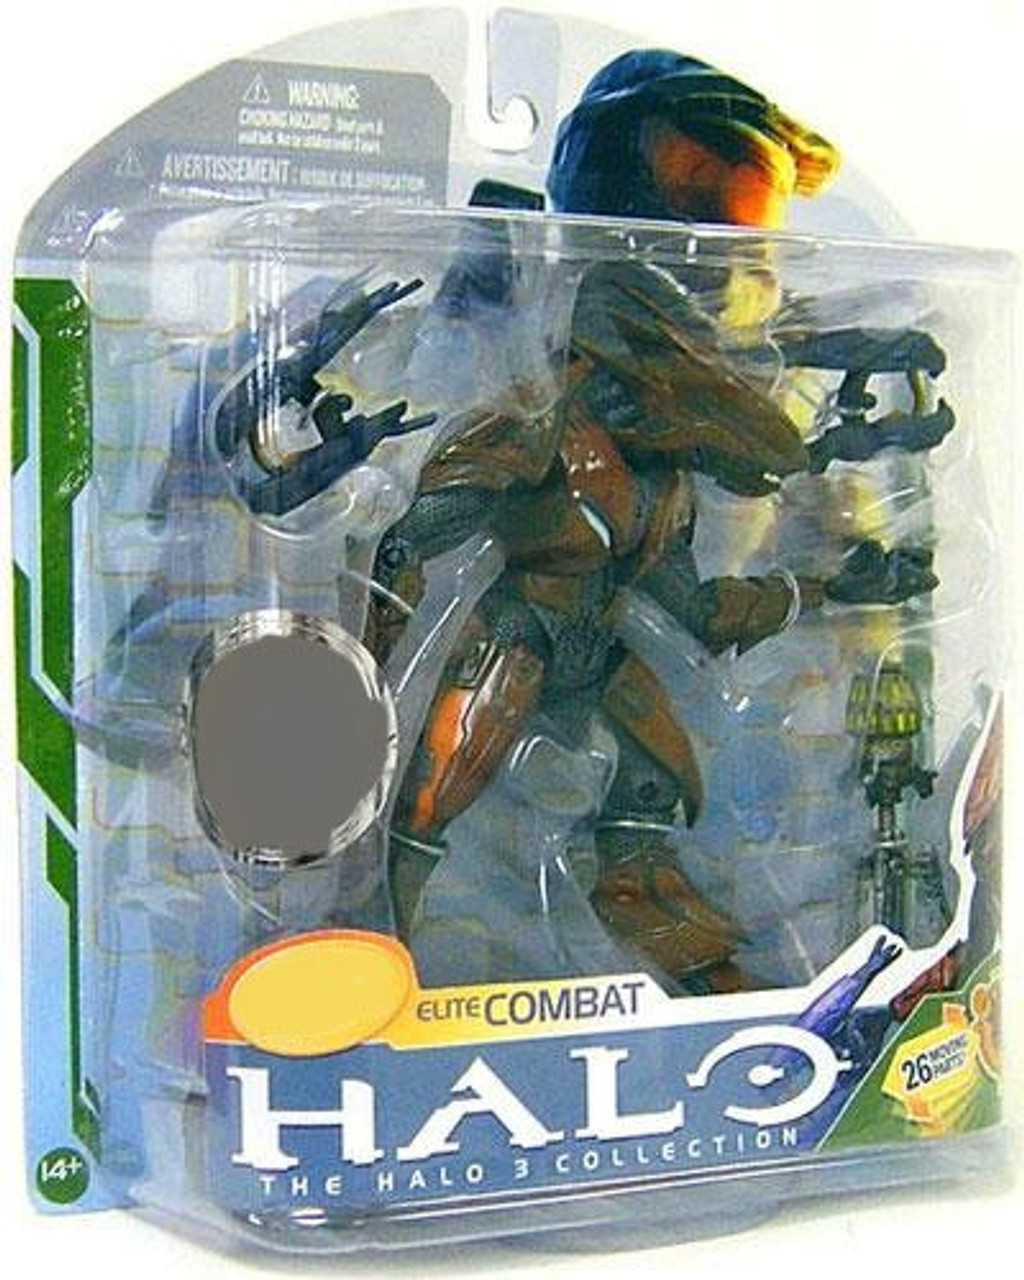 McFarlane Toys Halo 3 Series 5 Elite Combat Exclusive Action Figure [Brown]